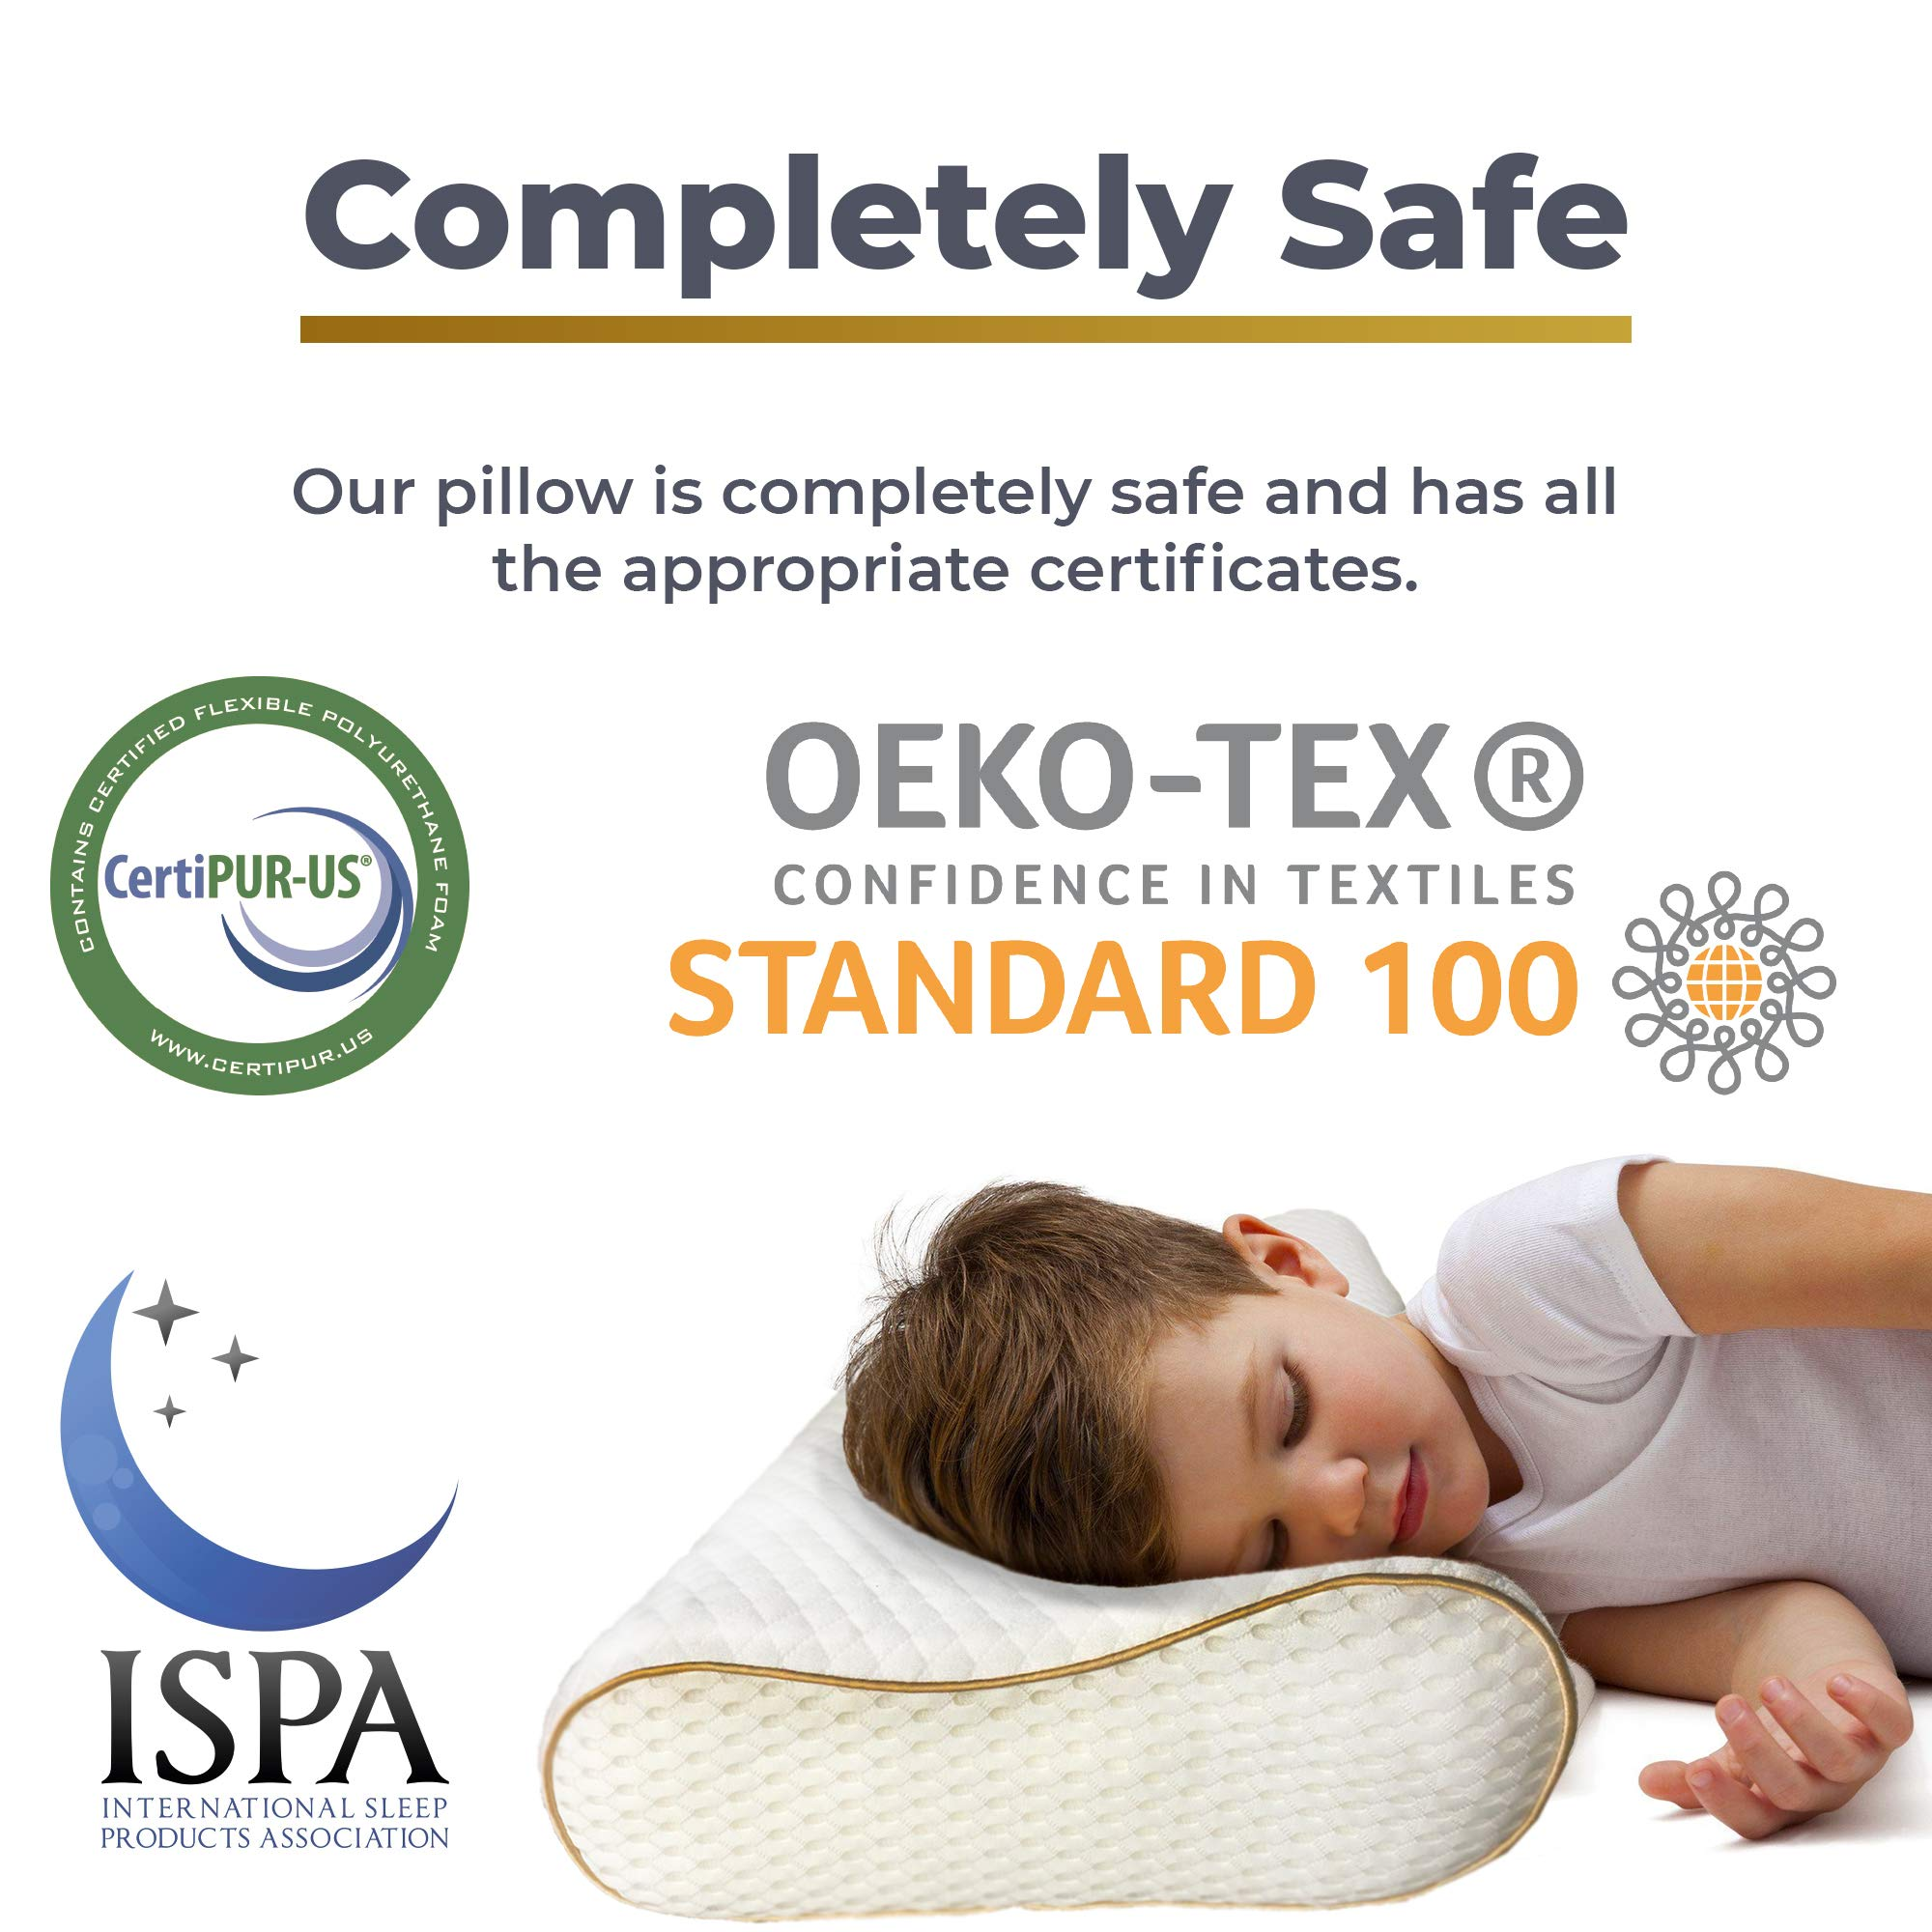 Memory Foam Pillow, Neck Pillow - ROYAL THERAPY Bamboo Adjustable Side Sleeper Pillow for Neck & Shoulder, Support for Back, Stomach, Side Sleepers, Orthopedic Contour Pillow, CertiPUR-US certified by Royal Therapy (Image #6)